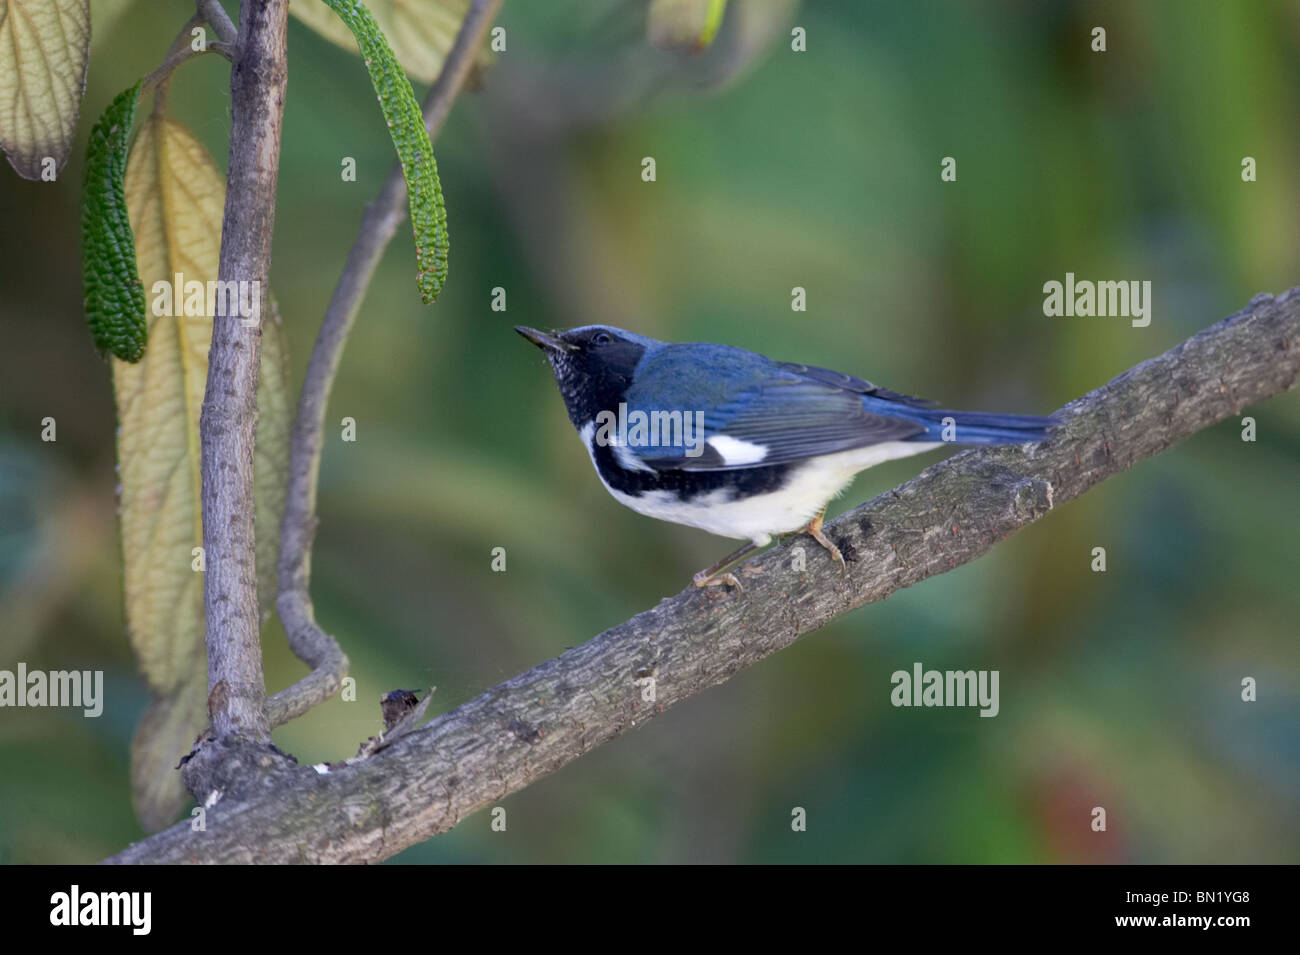 Adult male Black-throated Blue Warbler perched on a branch of Leatherleaf Virburnum - Stock Image